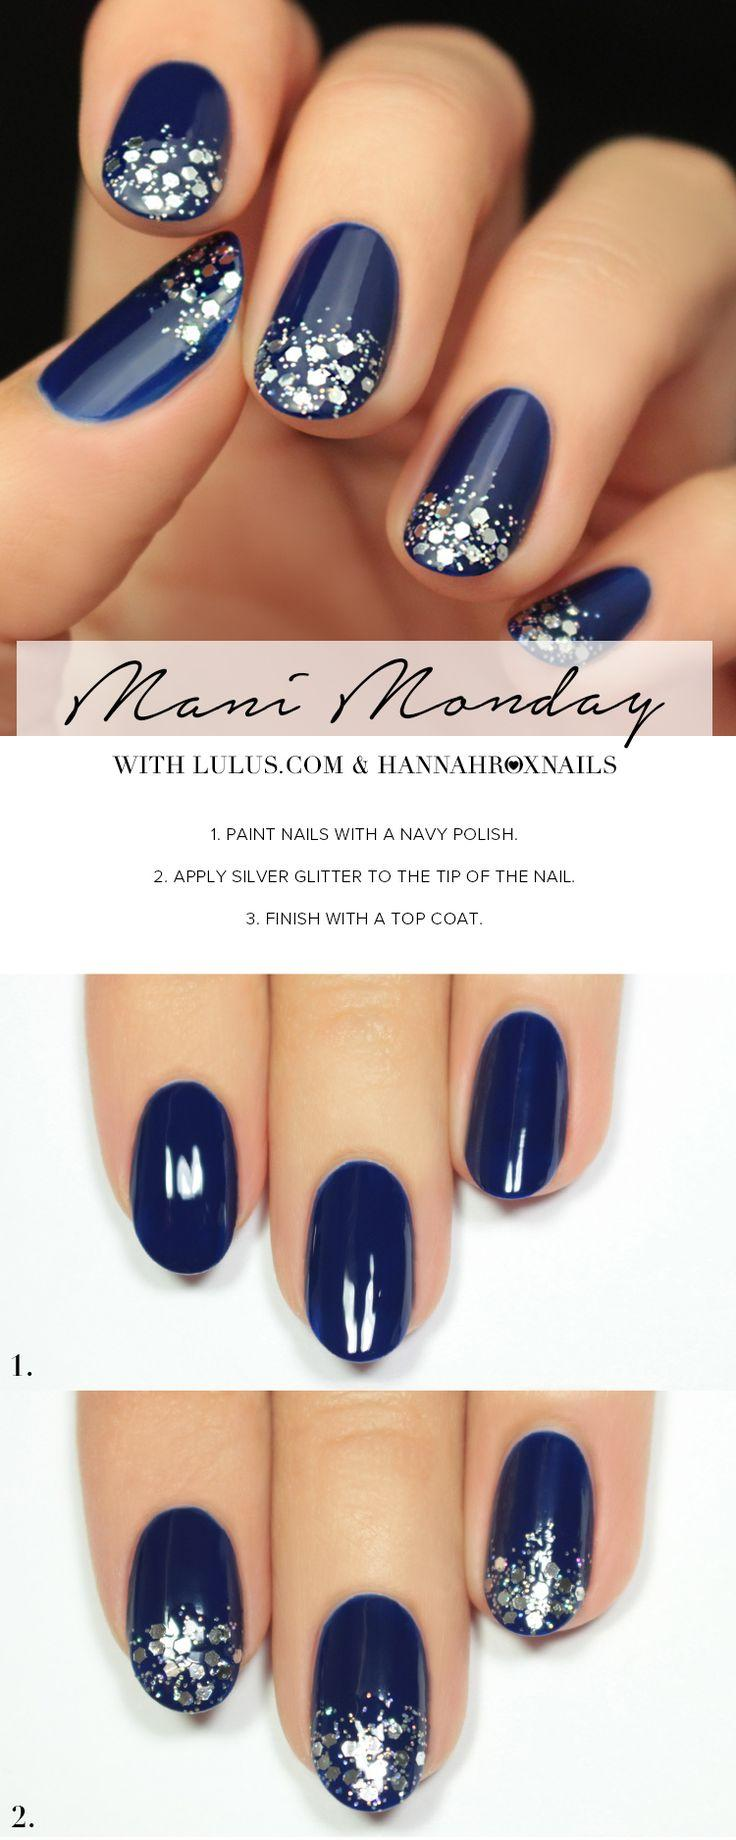 Düğün - Mani Monday: Navy Blue And Silver Glitter Nail Tutorial (Lulus.com Fashion Blog)